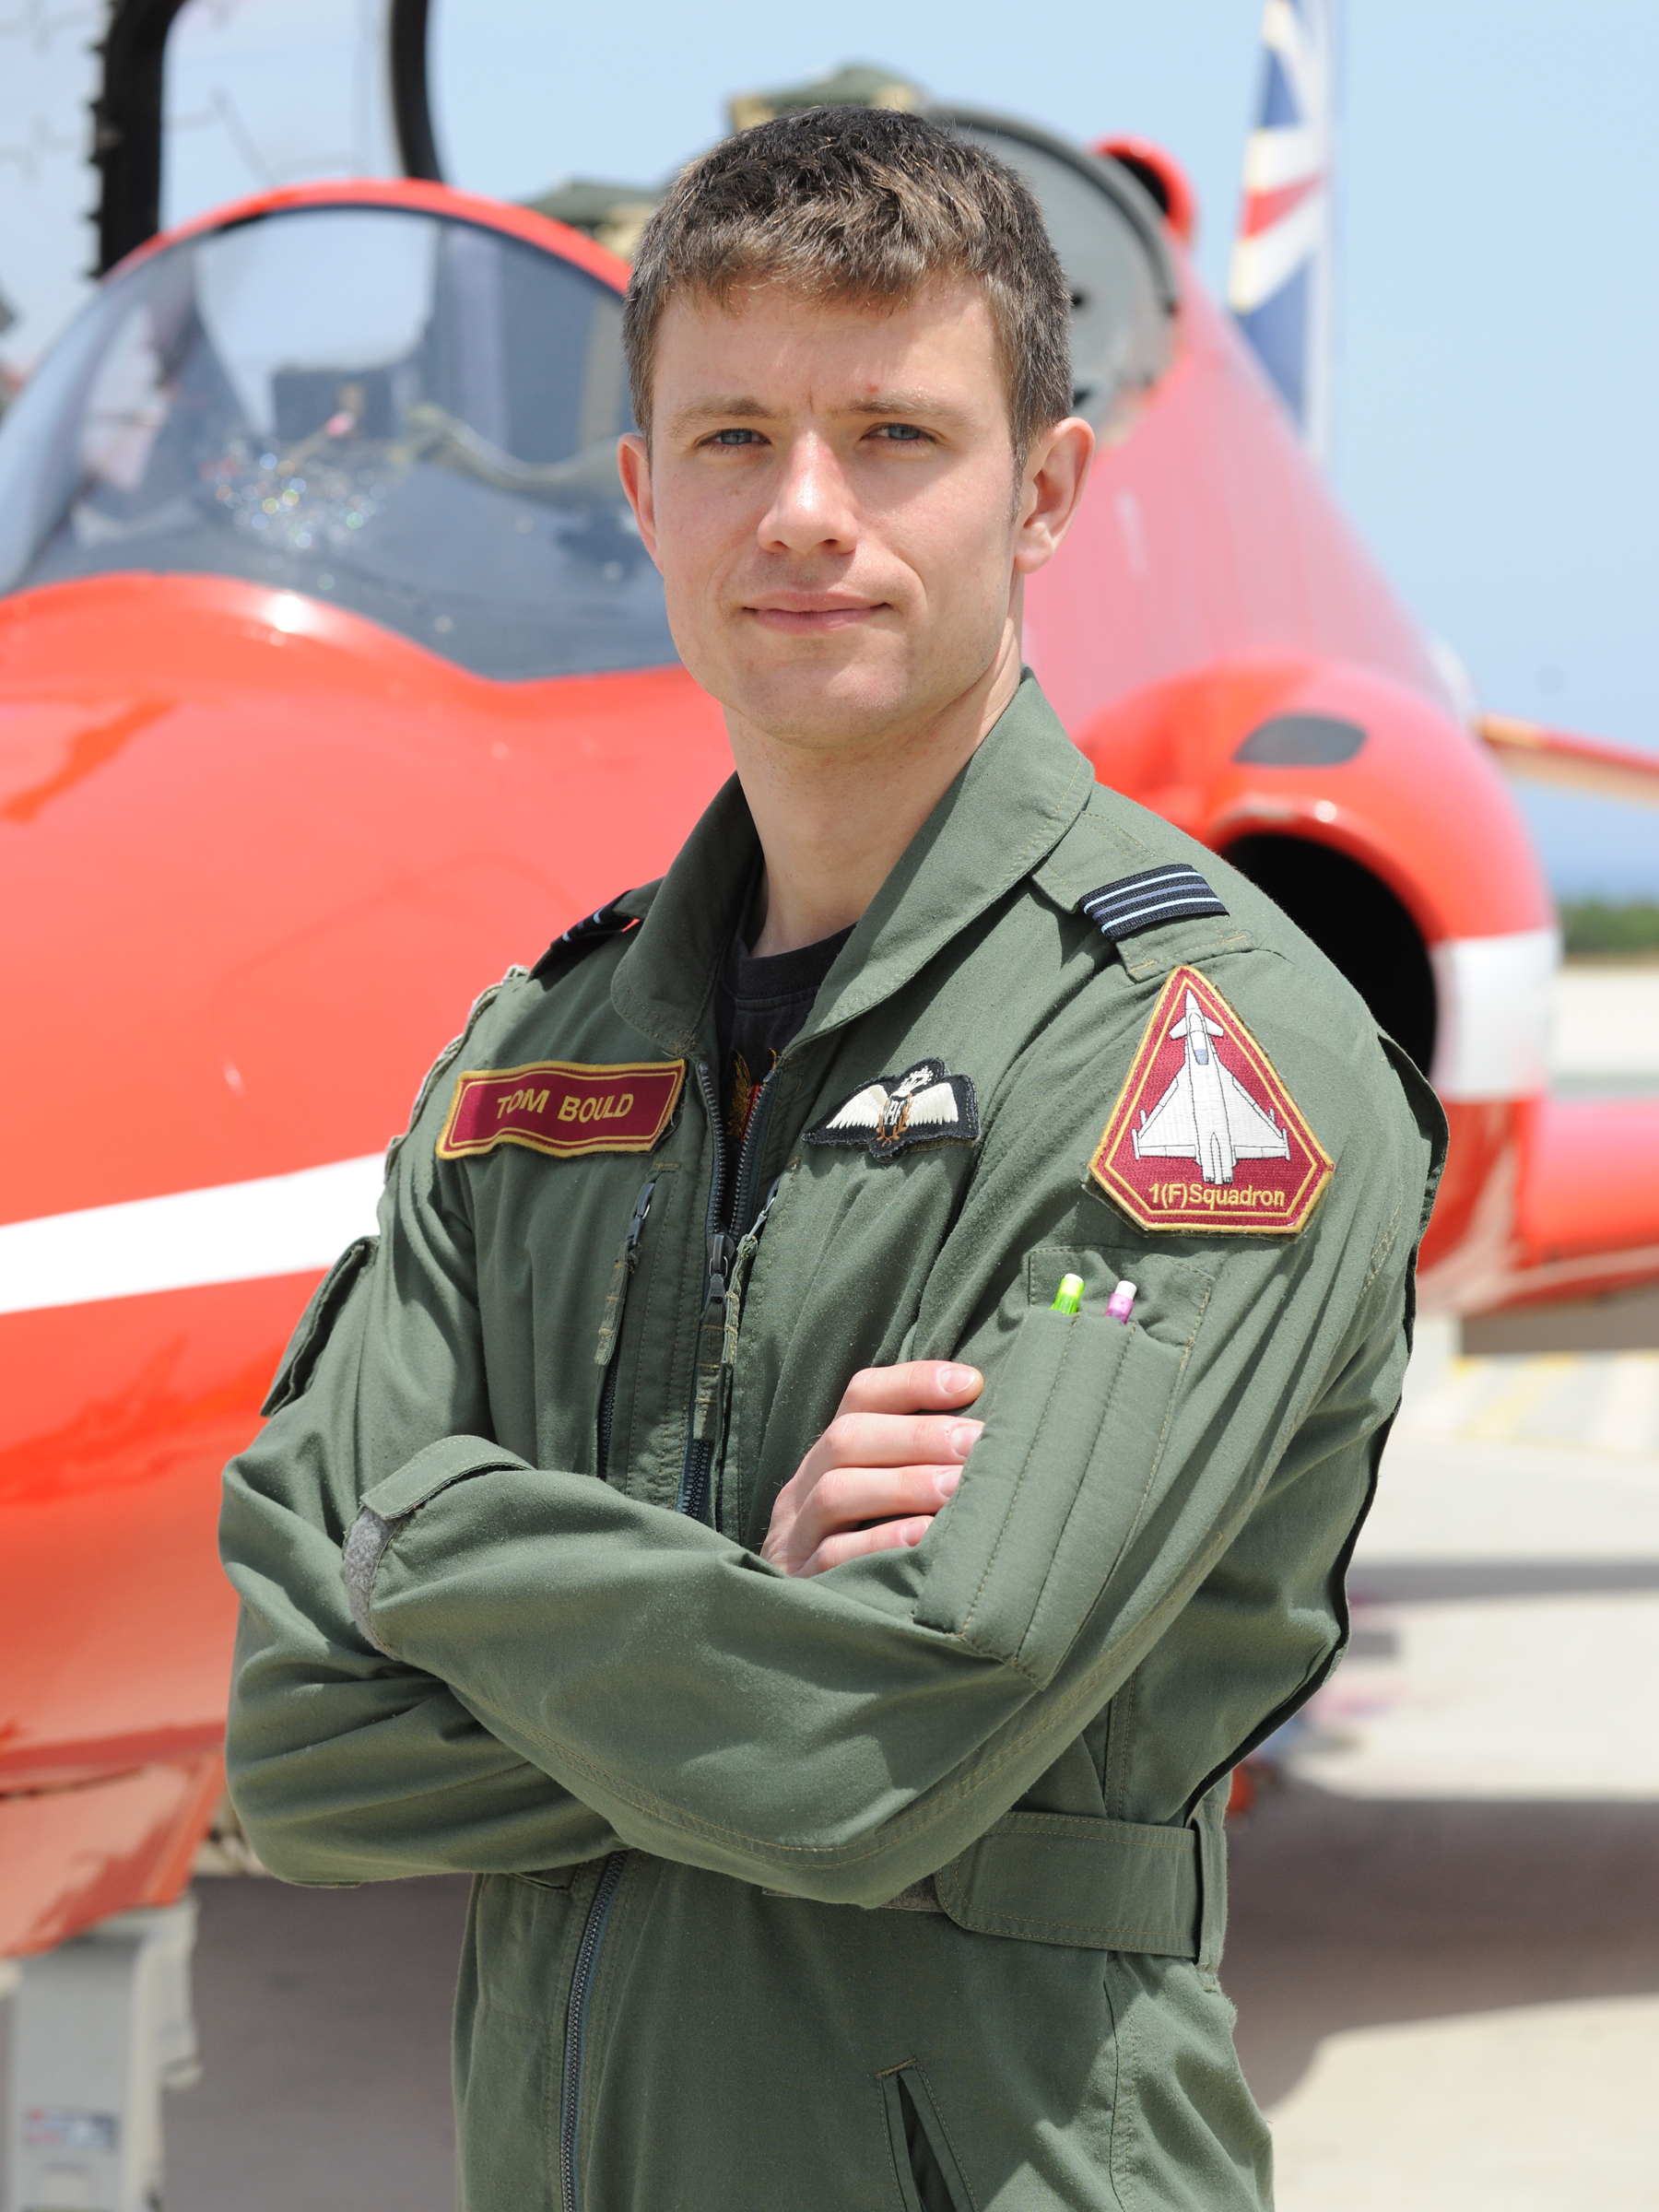 Flight Lieutenant Thomas Bould who is joining the Red Arrows in time for the 2015 season.